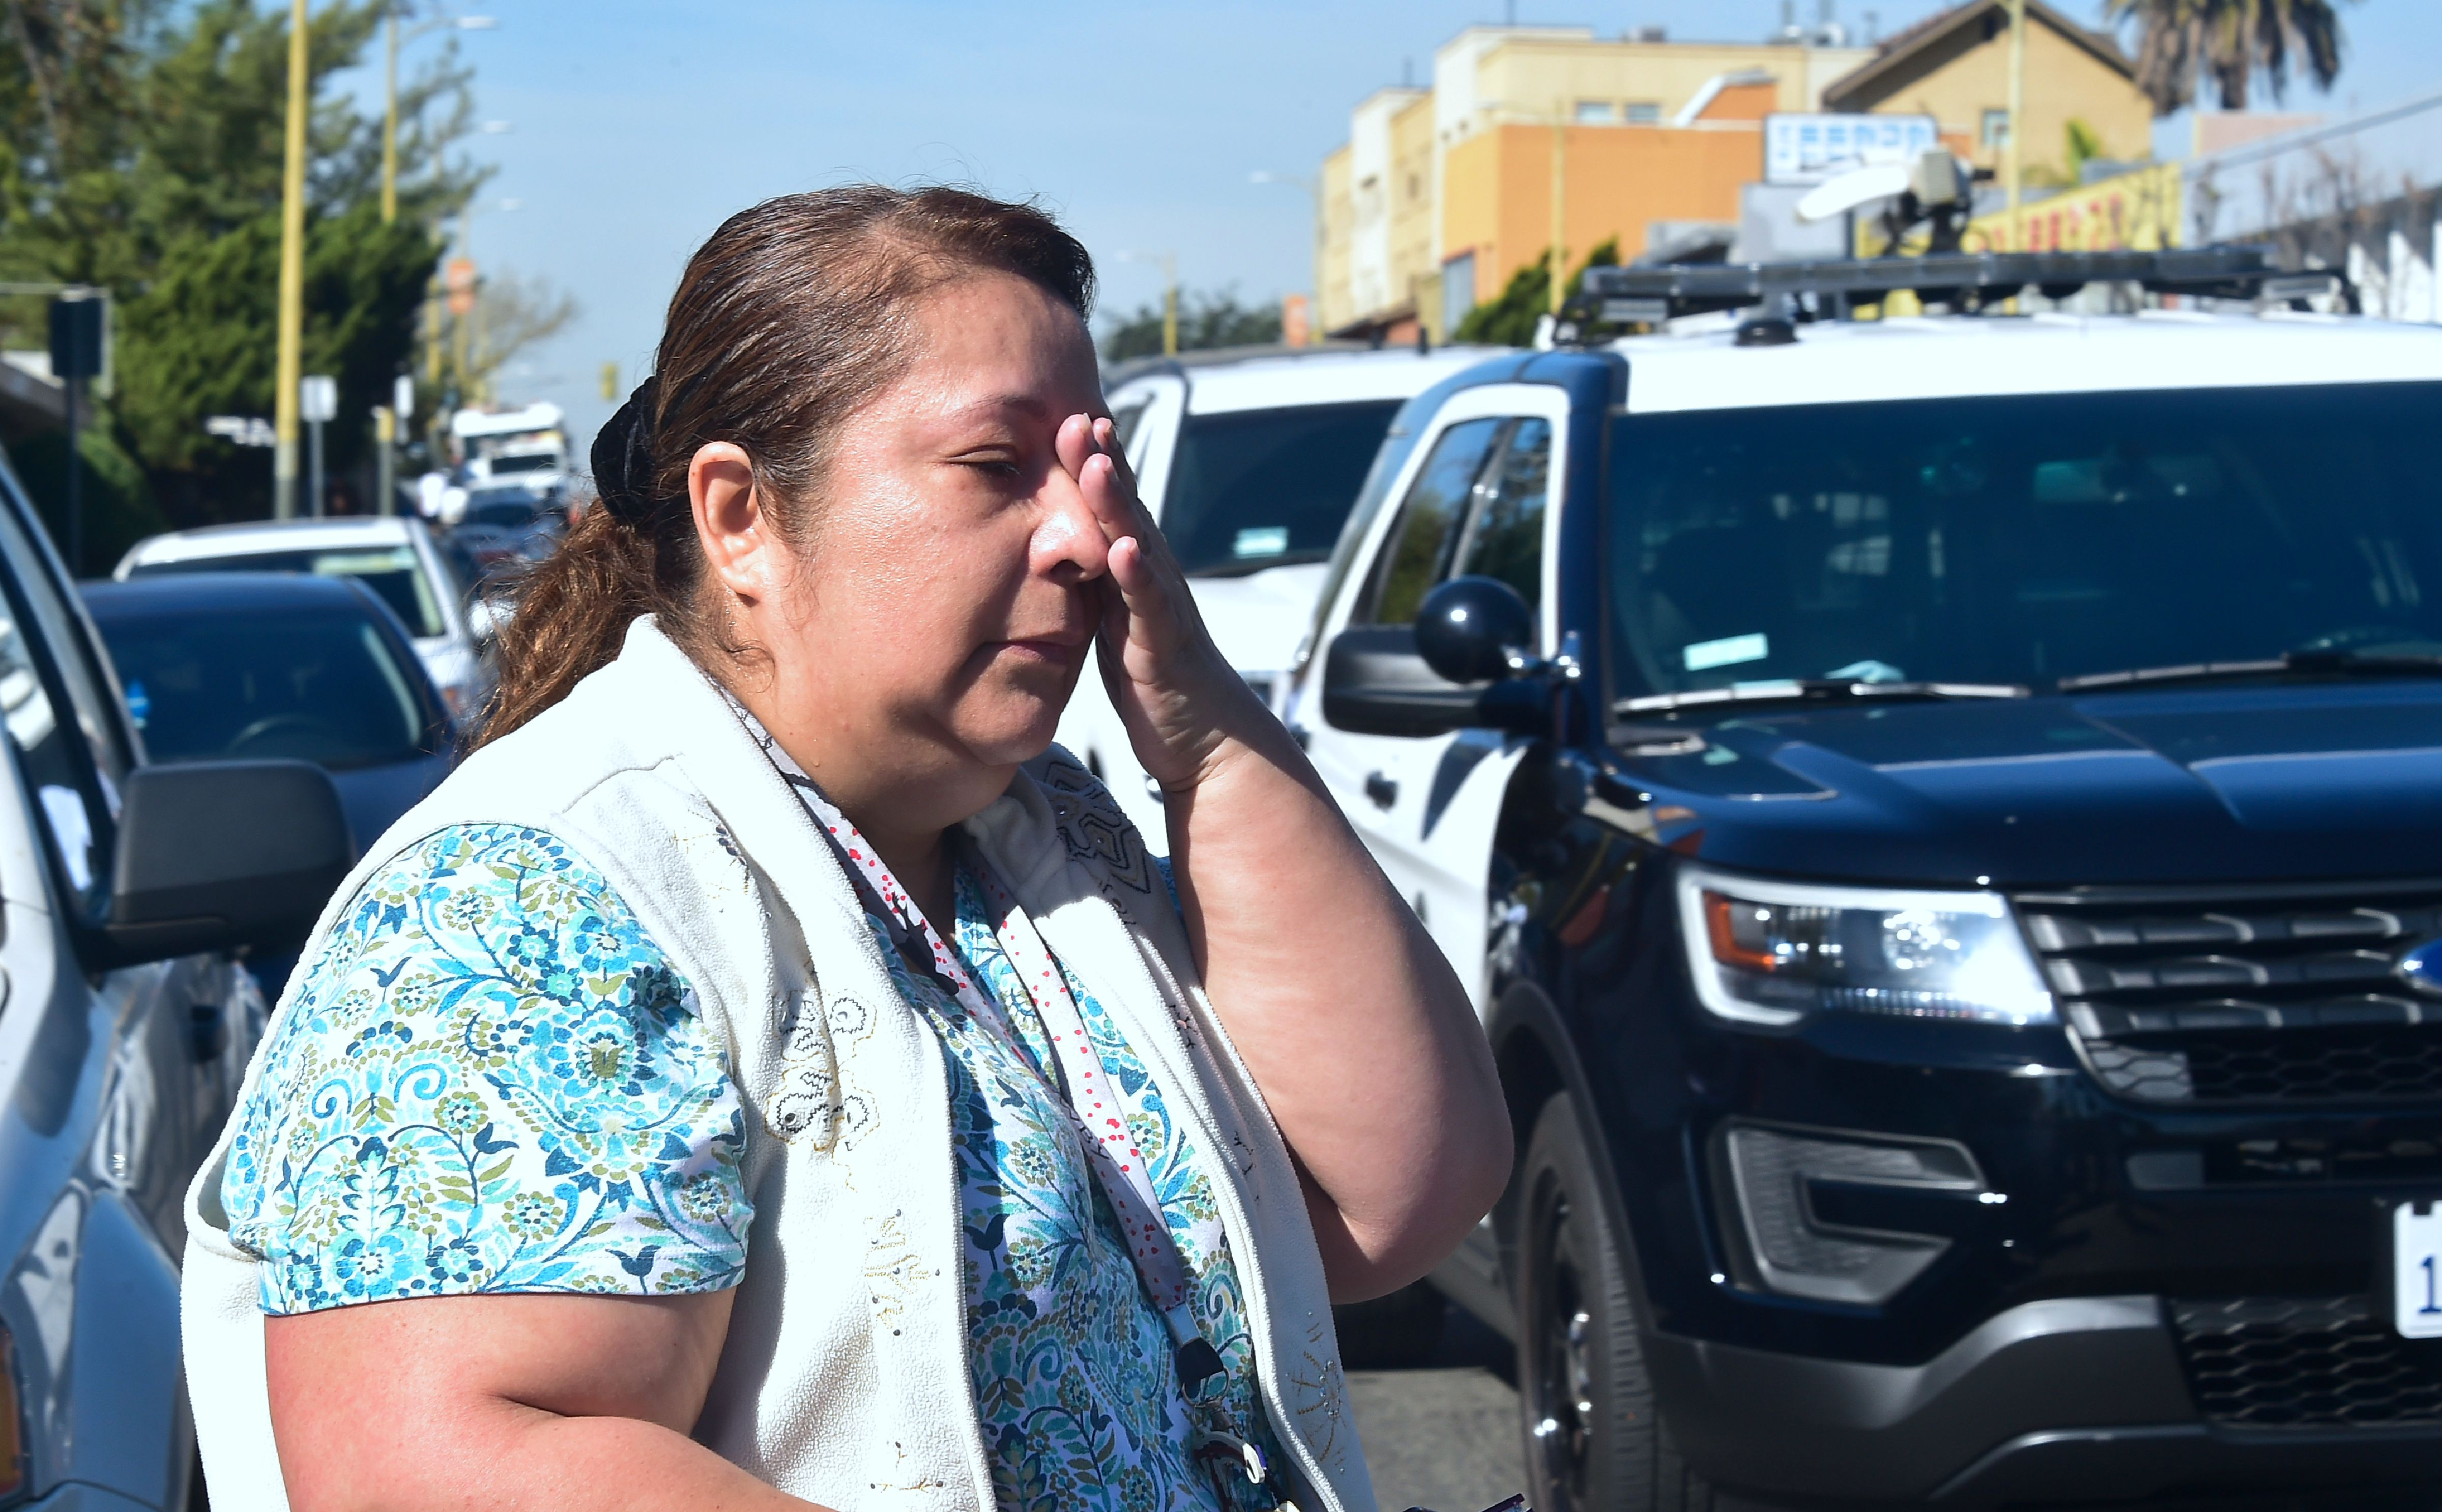 A parent reacts while crossing the street past police vehicles outside a roadblock near Salvadore Castro Middle School in Los Angeles, California on February 1, 2018, where two students were wounded, one critically, in a school shooting.                      Two 15-year-old students in Los Angeles were shot and wounded in class Thursday, according to witnesses and local media, in the latest school shooting to hit the United States. A boy was shot in the head, while a girl was hit in the wrist, according to reports from the scene. Local news agency CNS reported that a  young woman,  possibly a fellow student, had been arrested.                       / AFP PHOTO / Frederic J. Brown        (Photo credit should read FREDERIC J. BROWN/AFP/Getty Images)